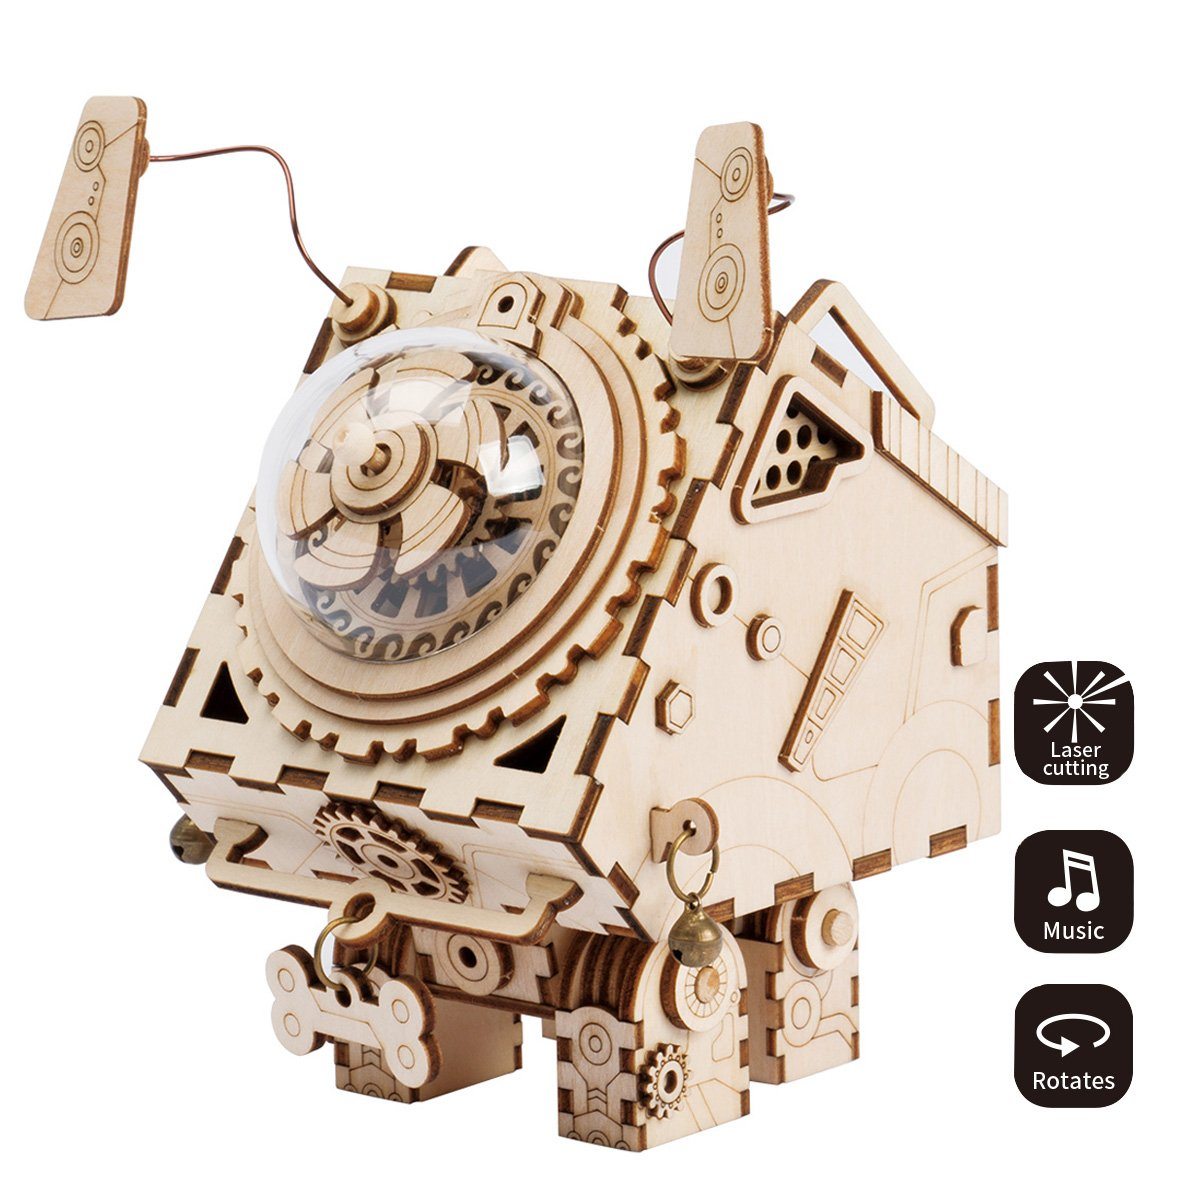 ROKR DIY Wooden Music Box Kit-Hand Crank Musical Mechanism-3d Wooden Model Building Kit-Best Gift for Boys and Girls When Christmas/Birthday/Valentine's Day